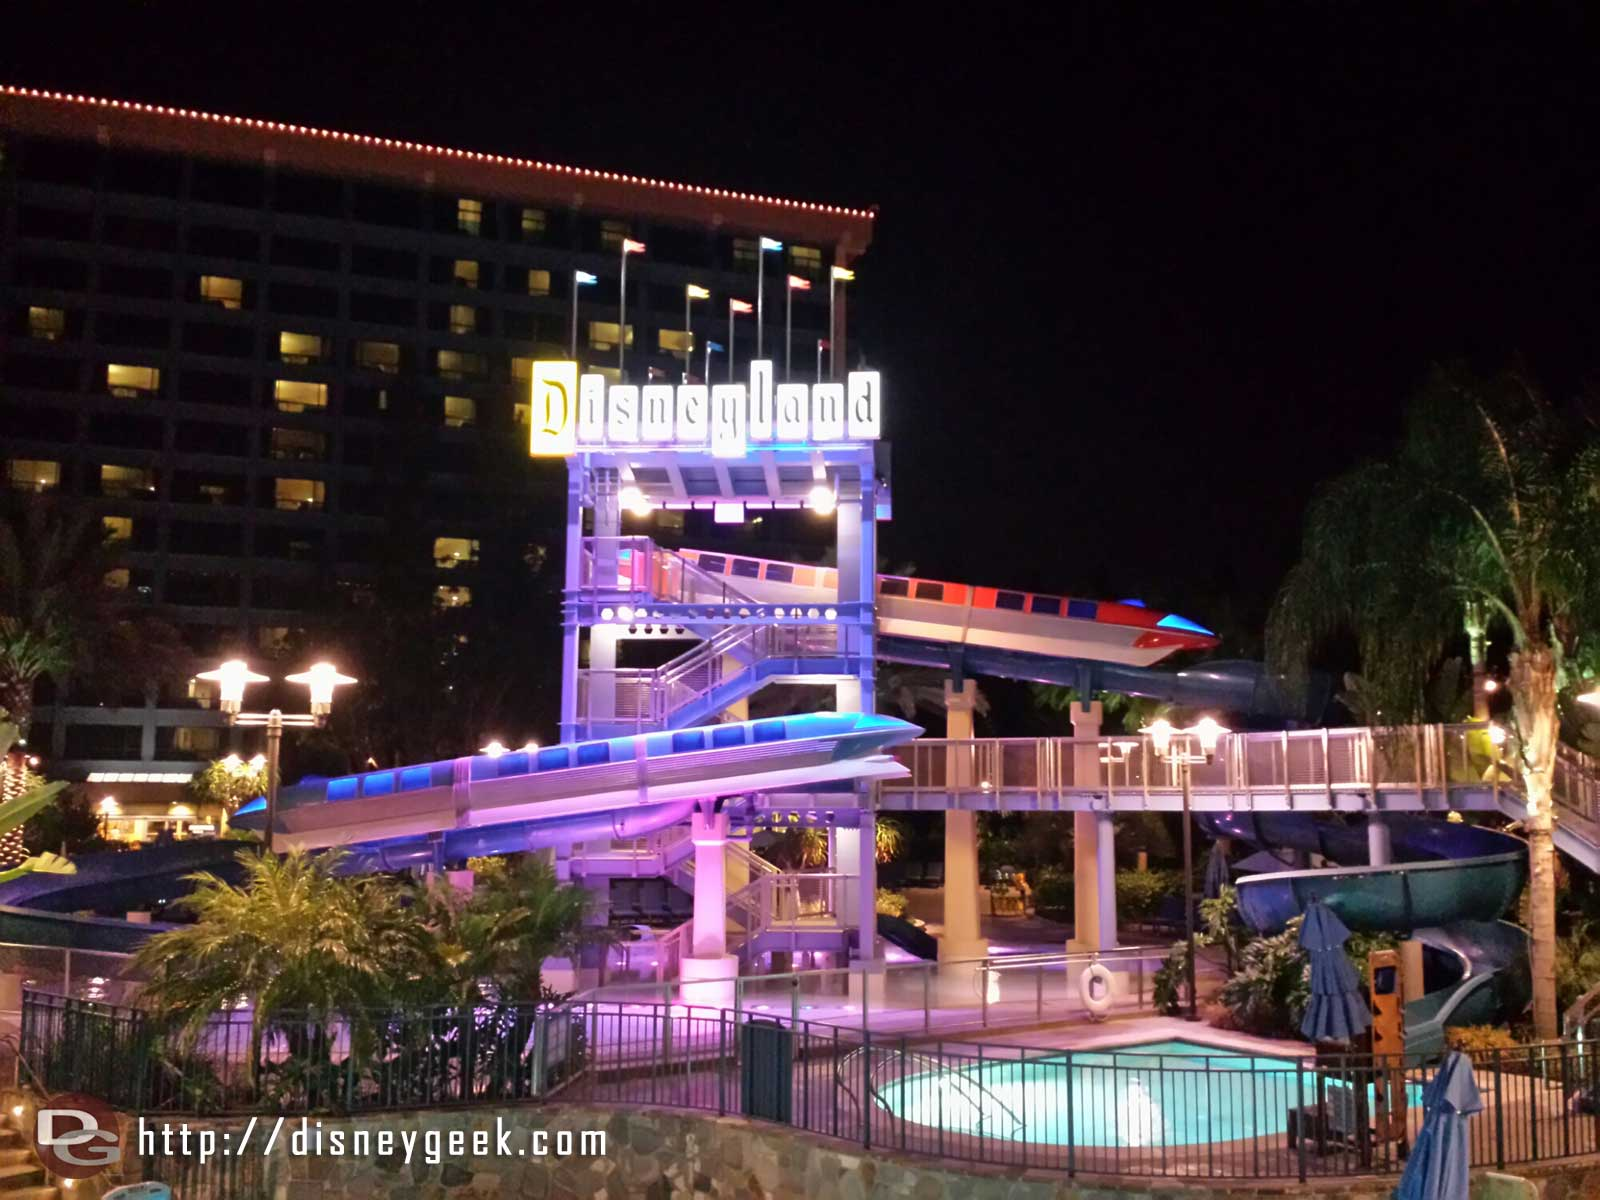 #Disneyland Hotel monorail waterslide